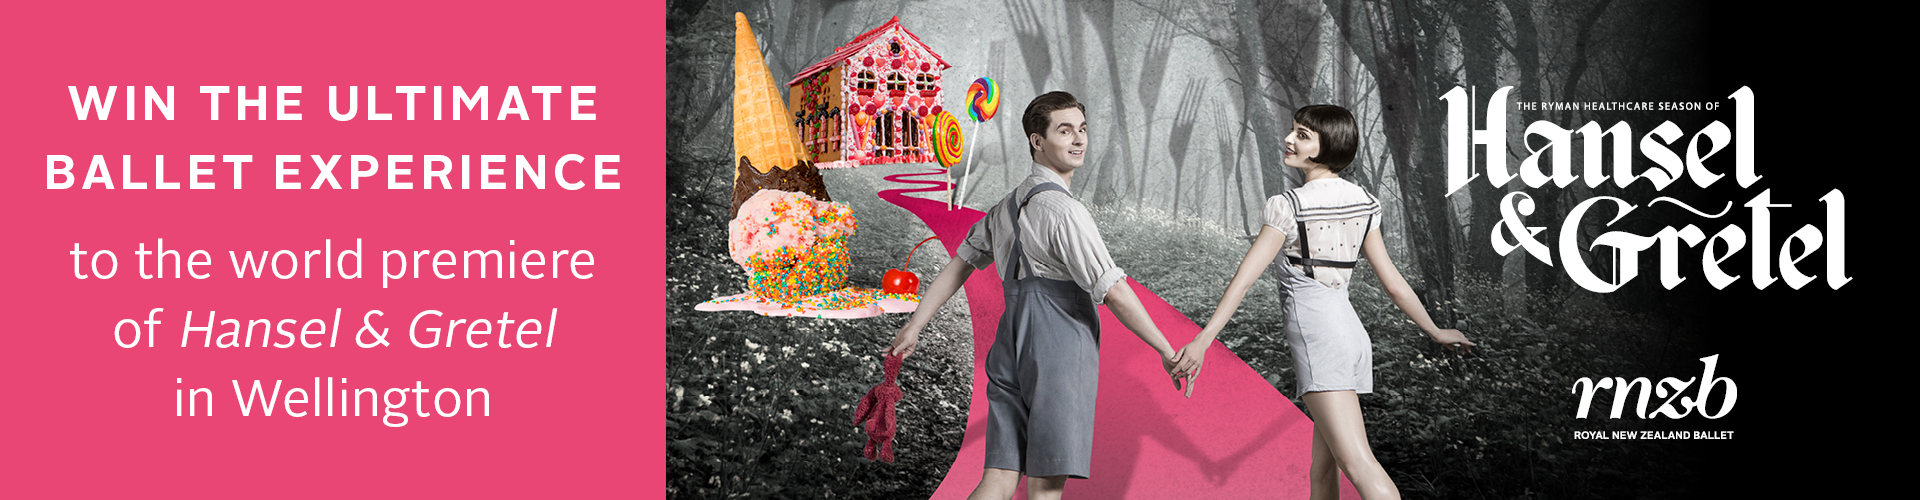 Hansel and Gretel - Landing Page 1920x500px